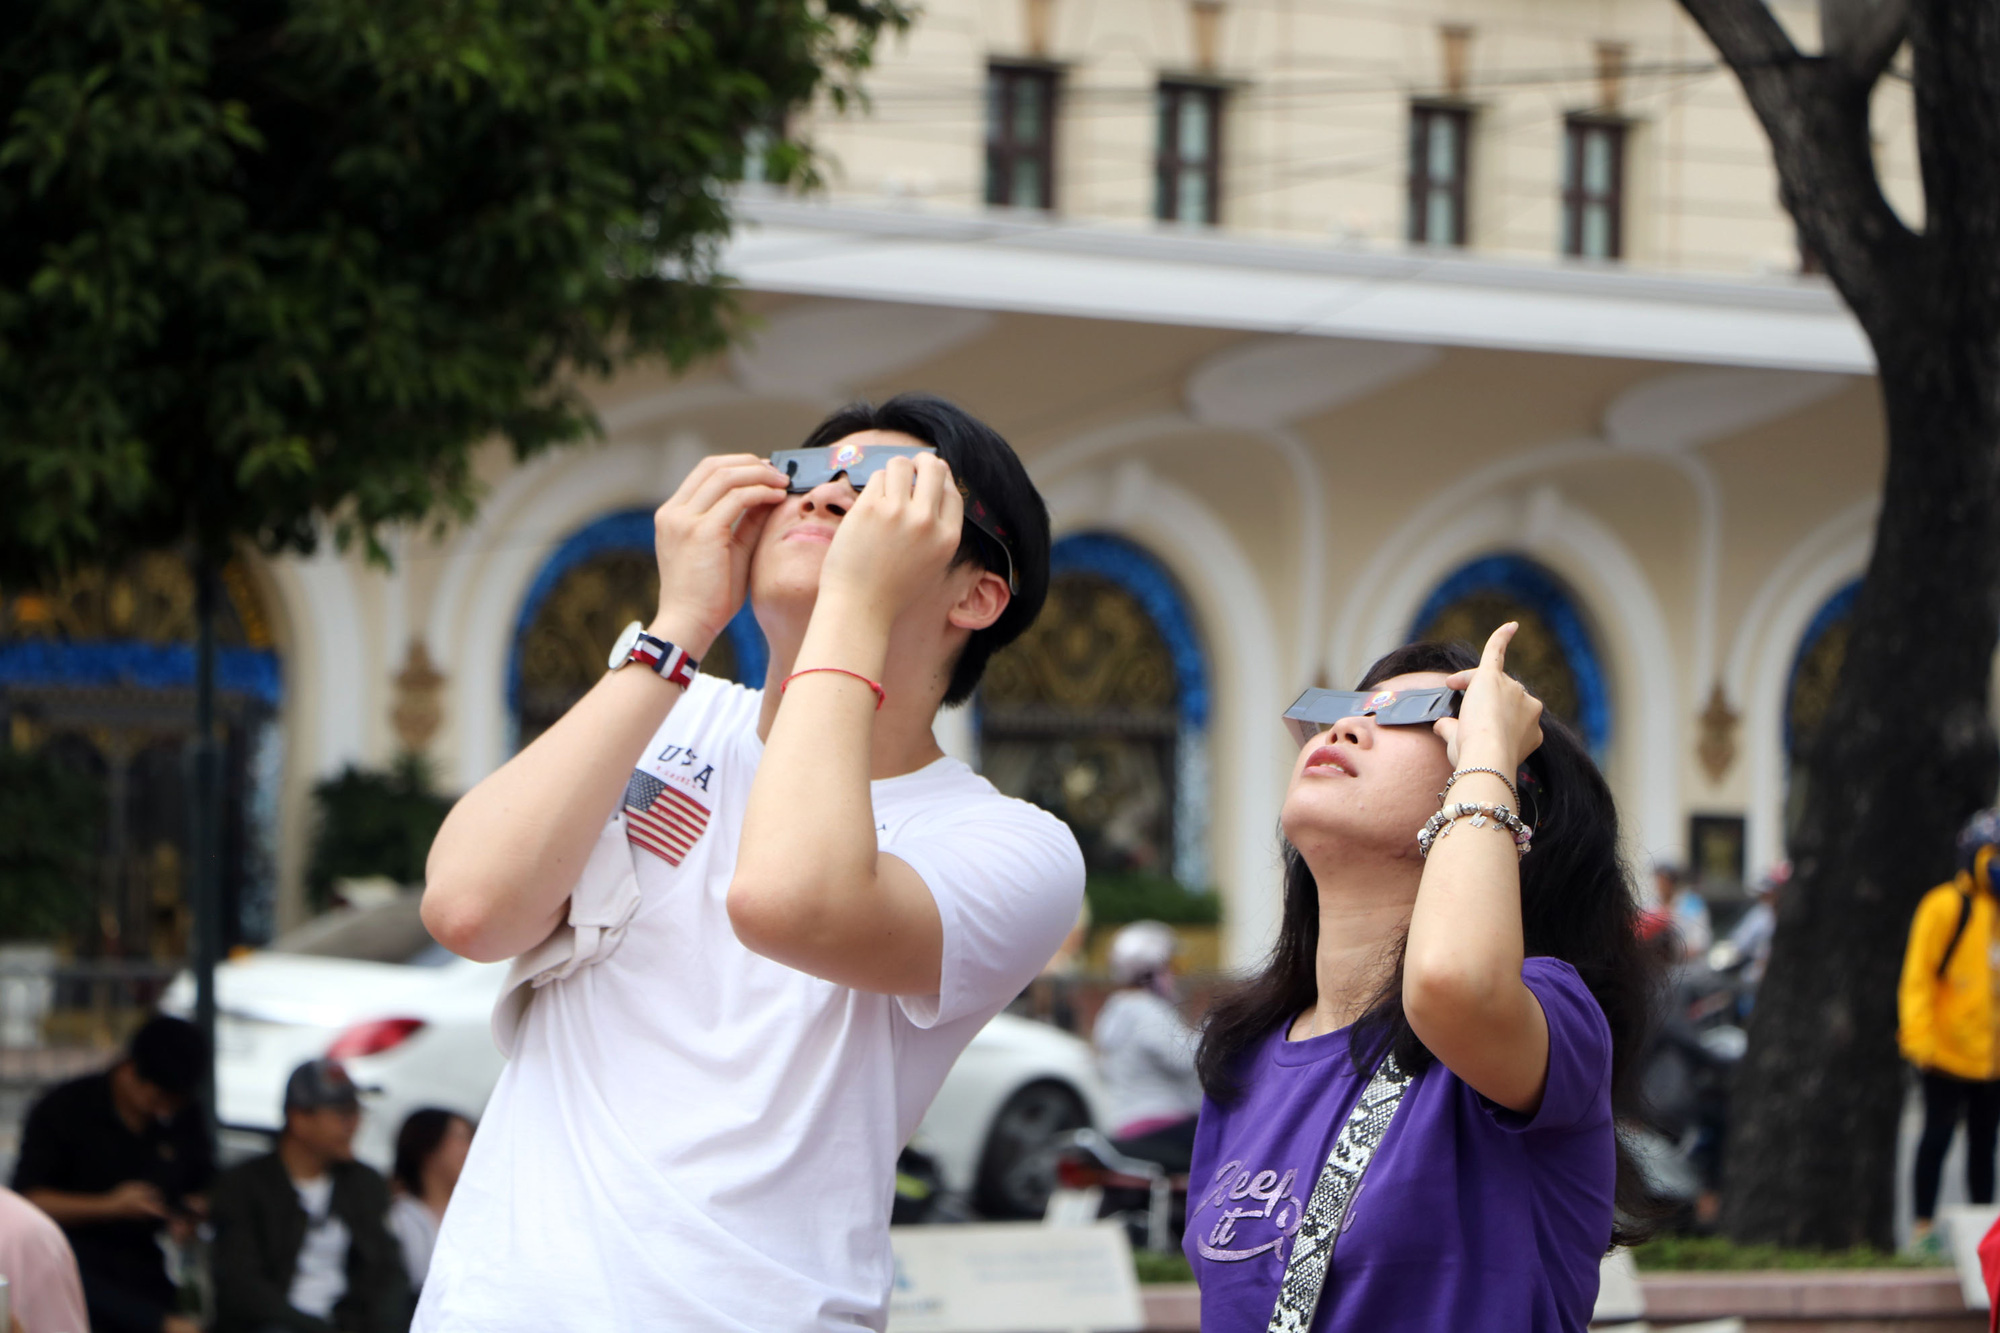 Ho Chi Minh City residents flock to see year's last solar eclipse